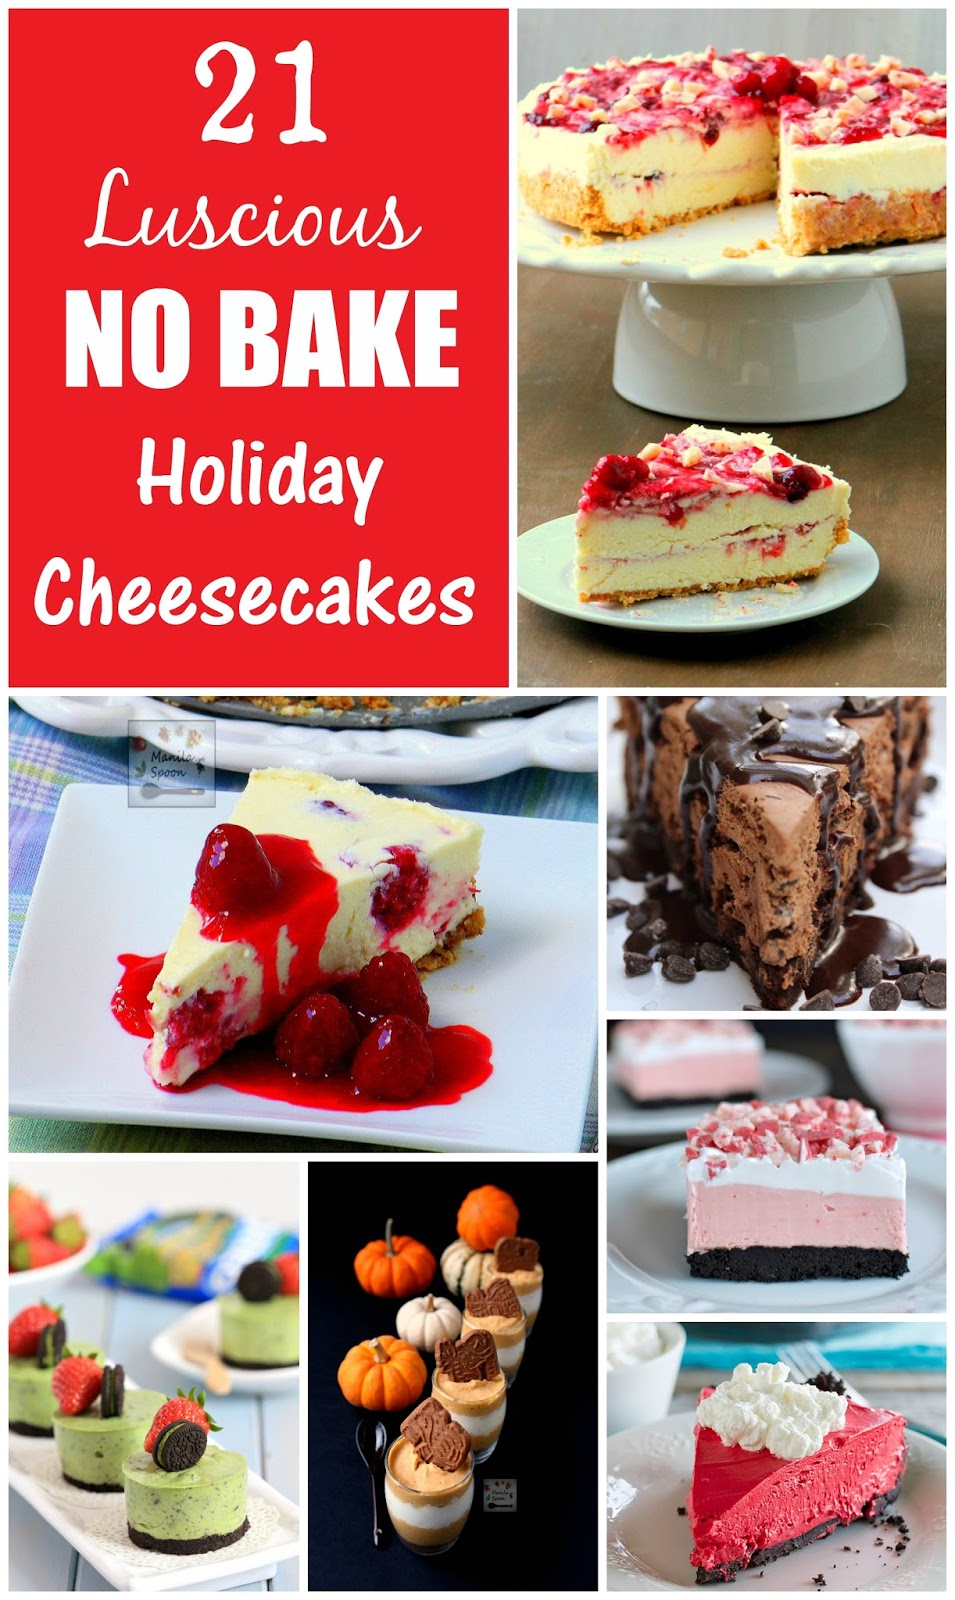 21 Luscious NO BAKE Holiday Cheesecakes